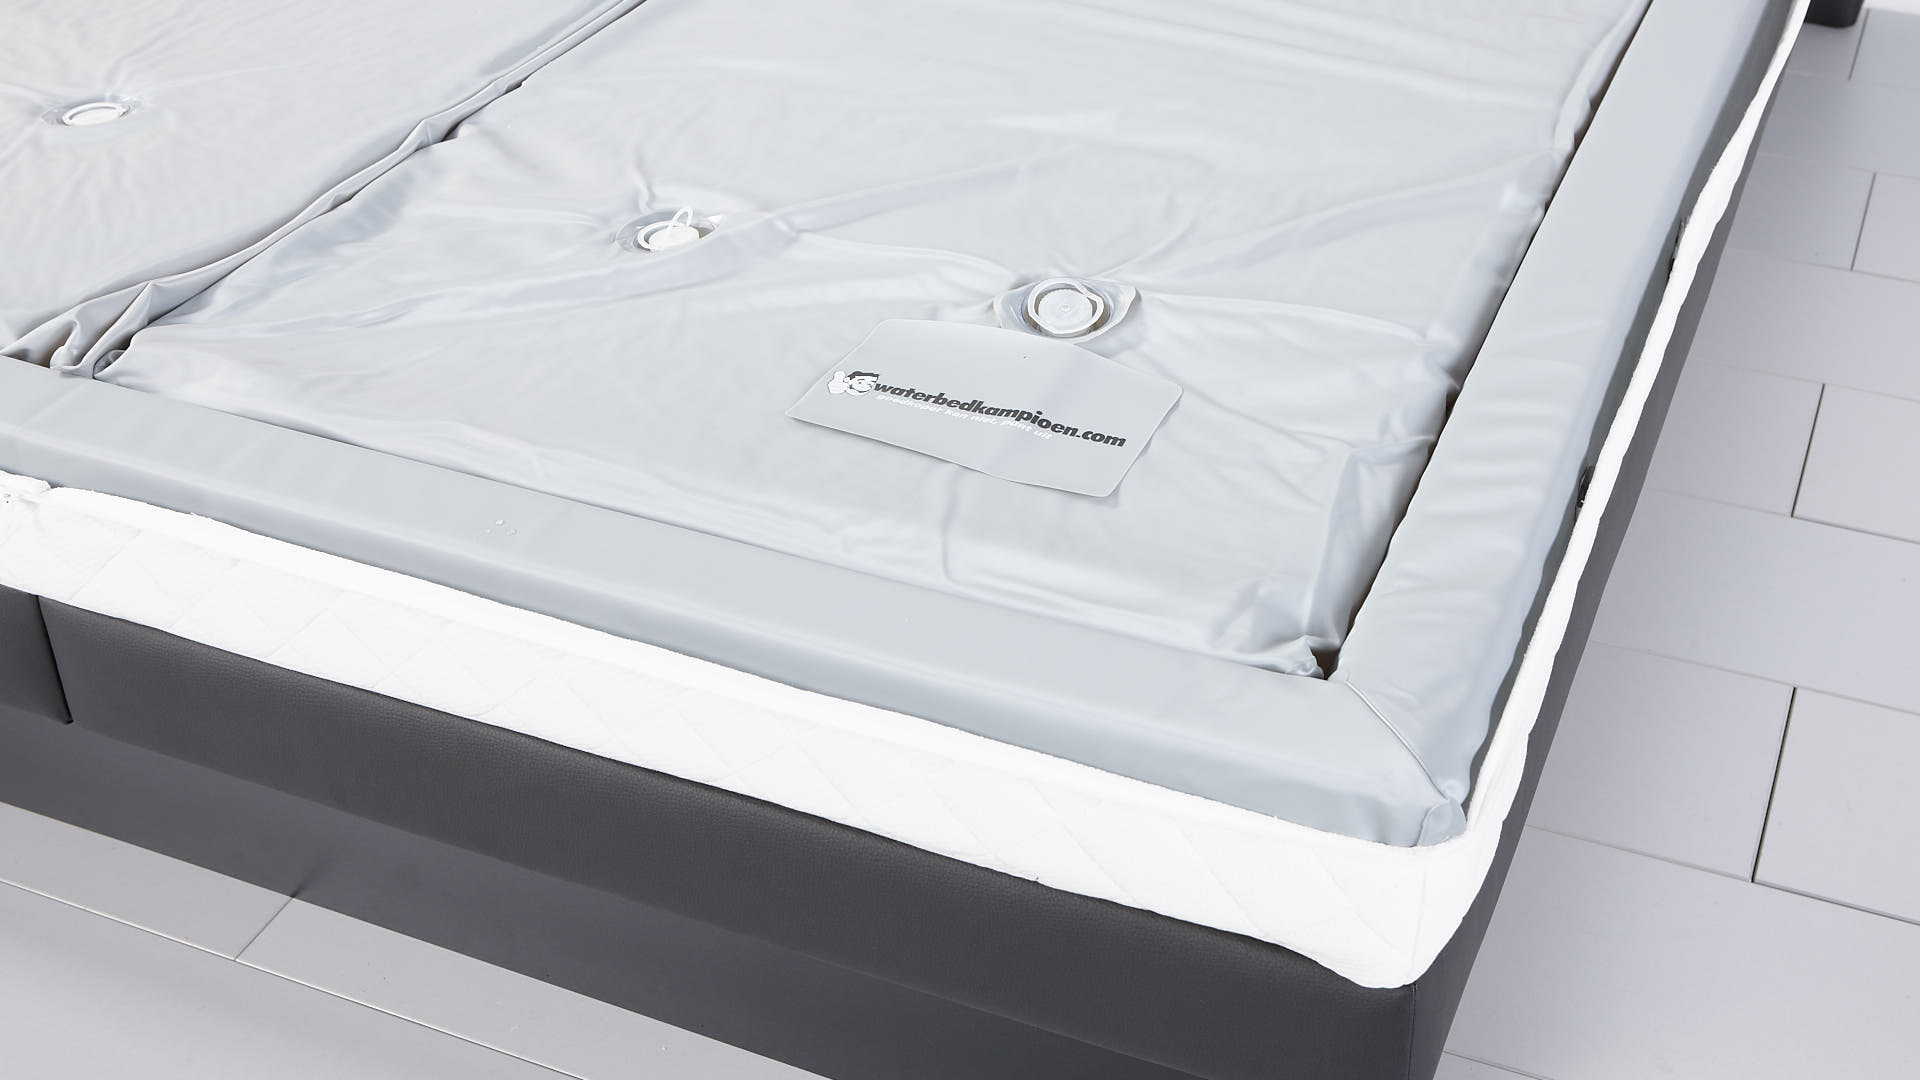 watermatras label waterbed kampioen